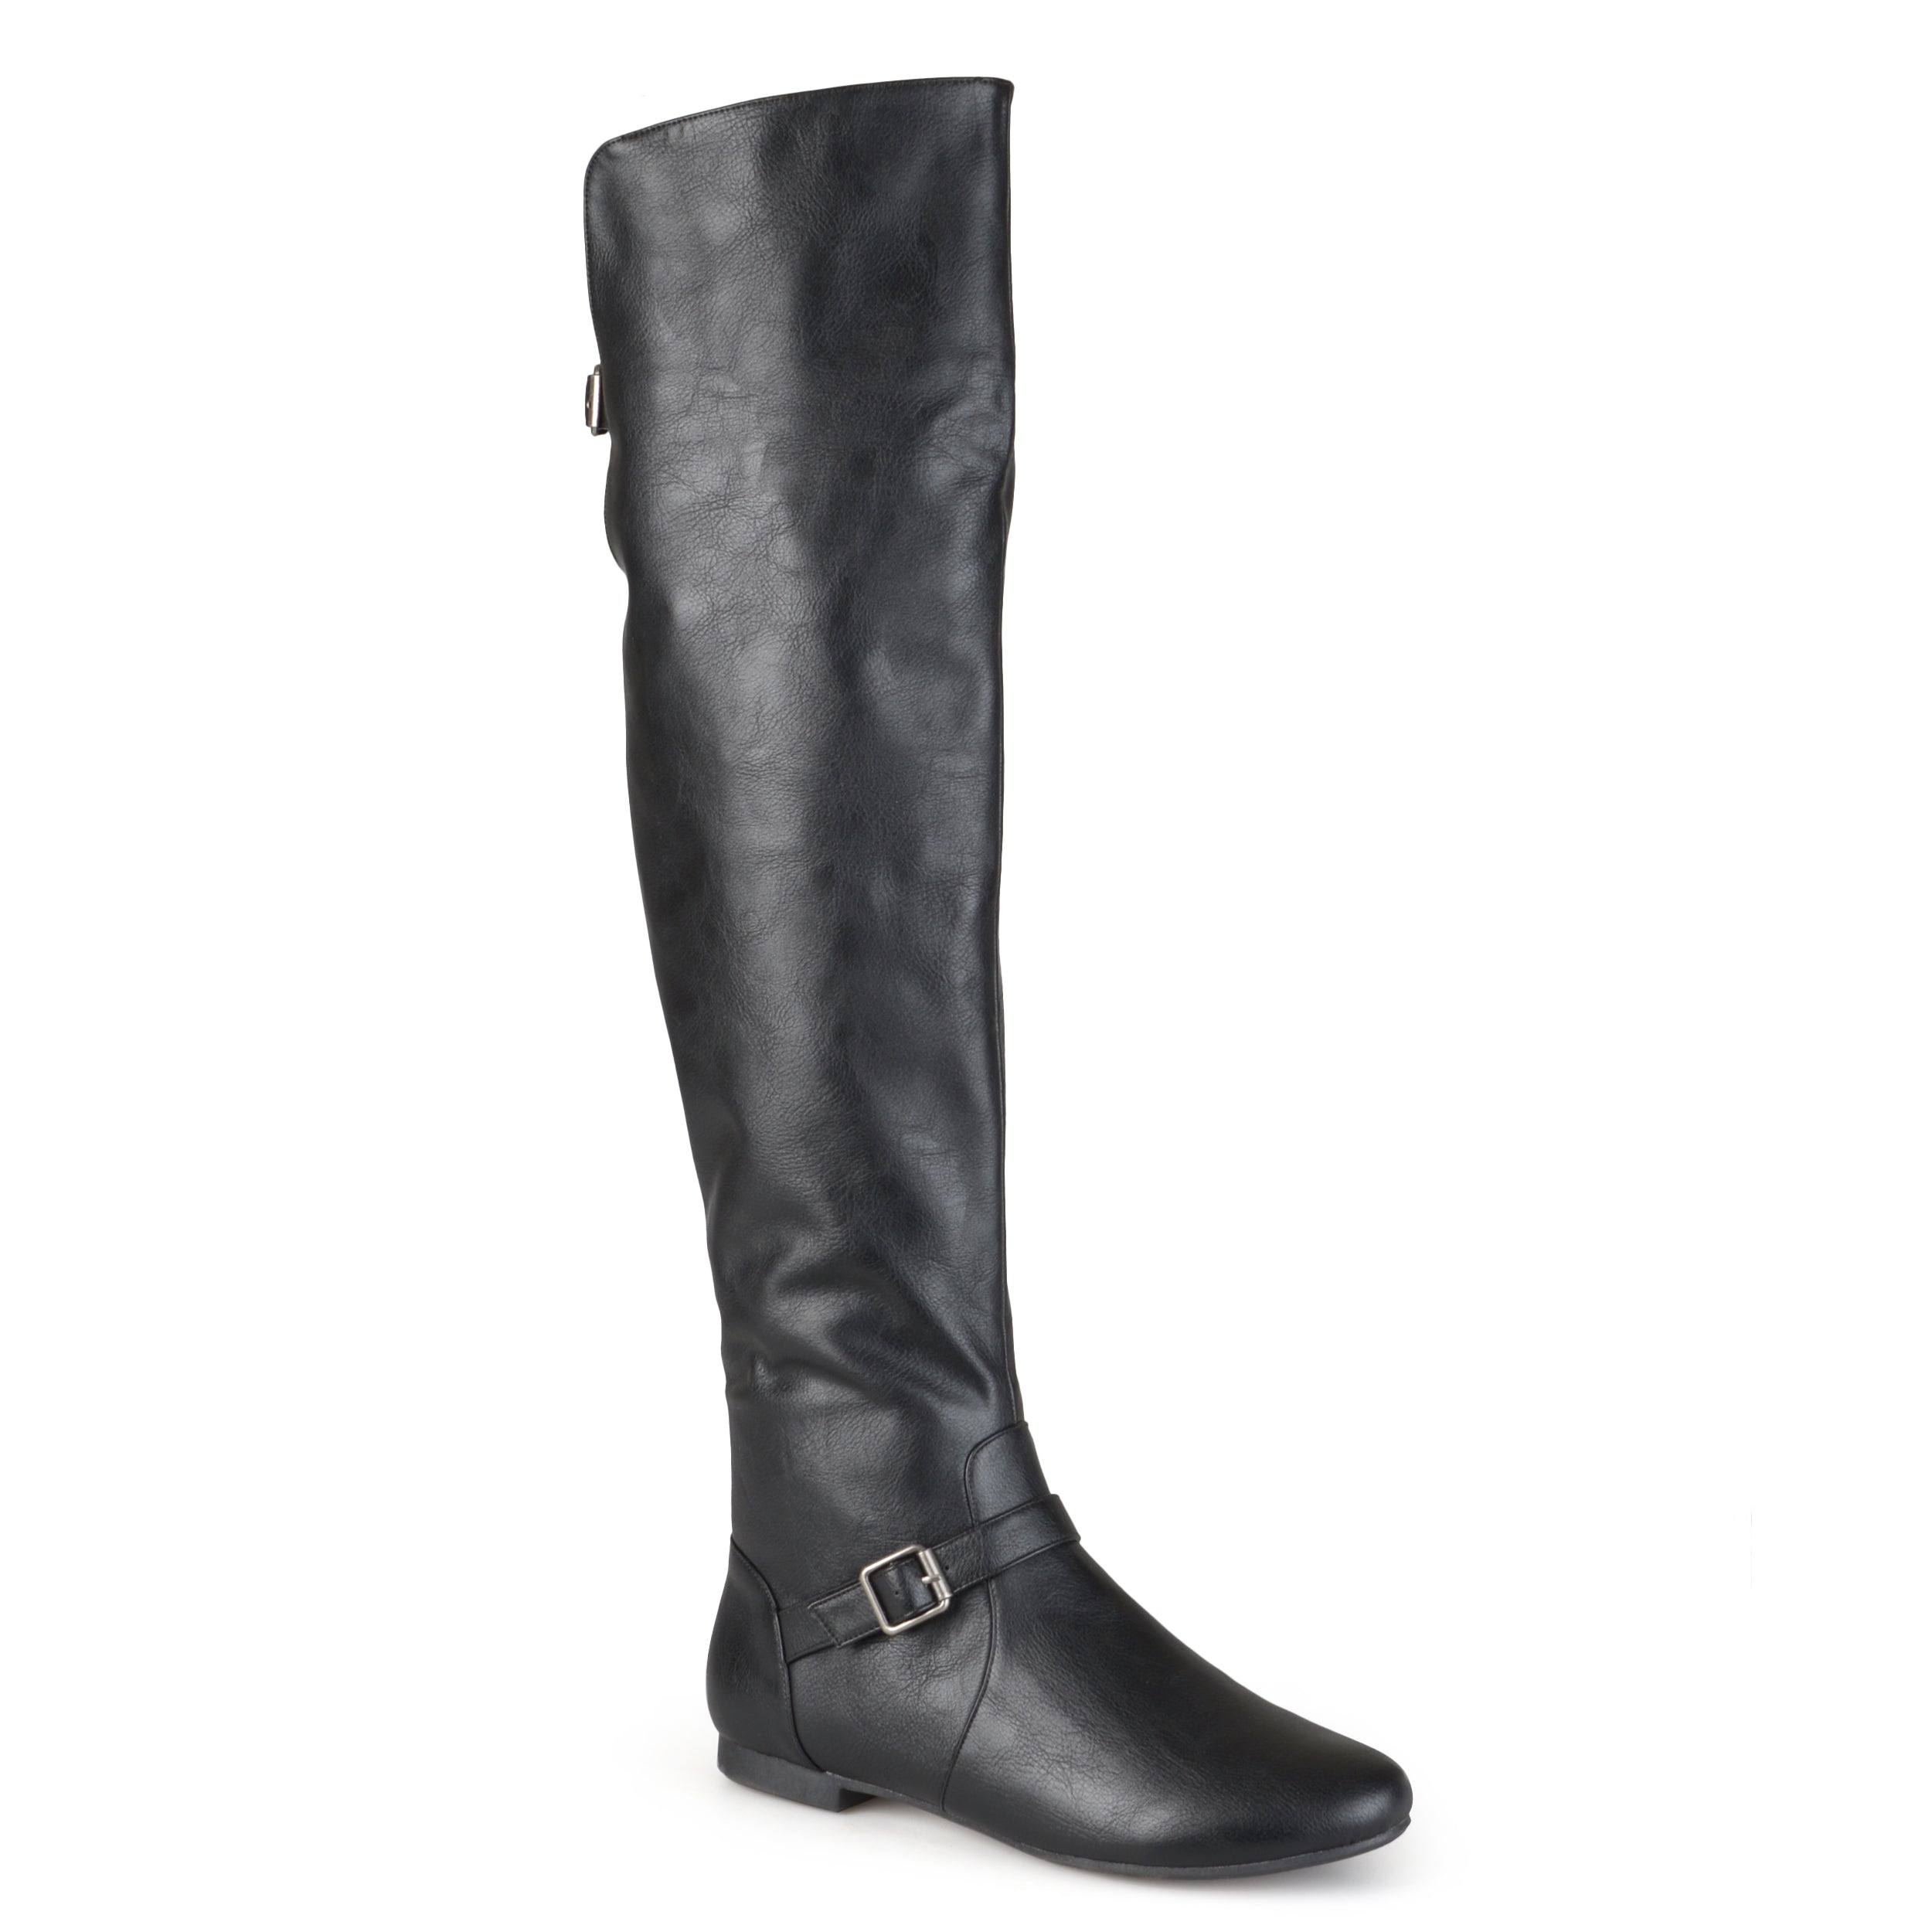 400c043857c Womens Buckle Tall Round Toe Riding Boots